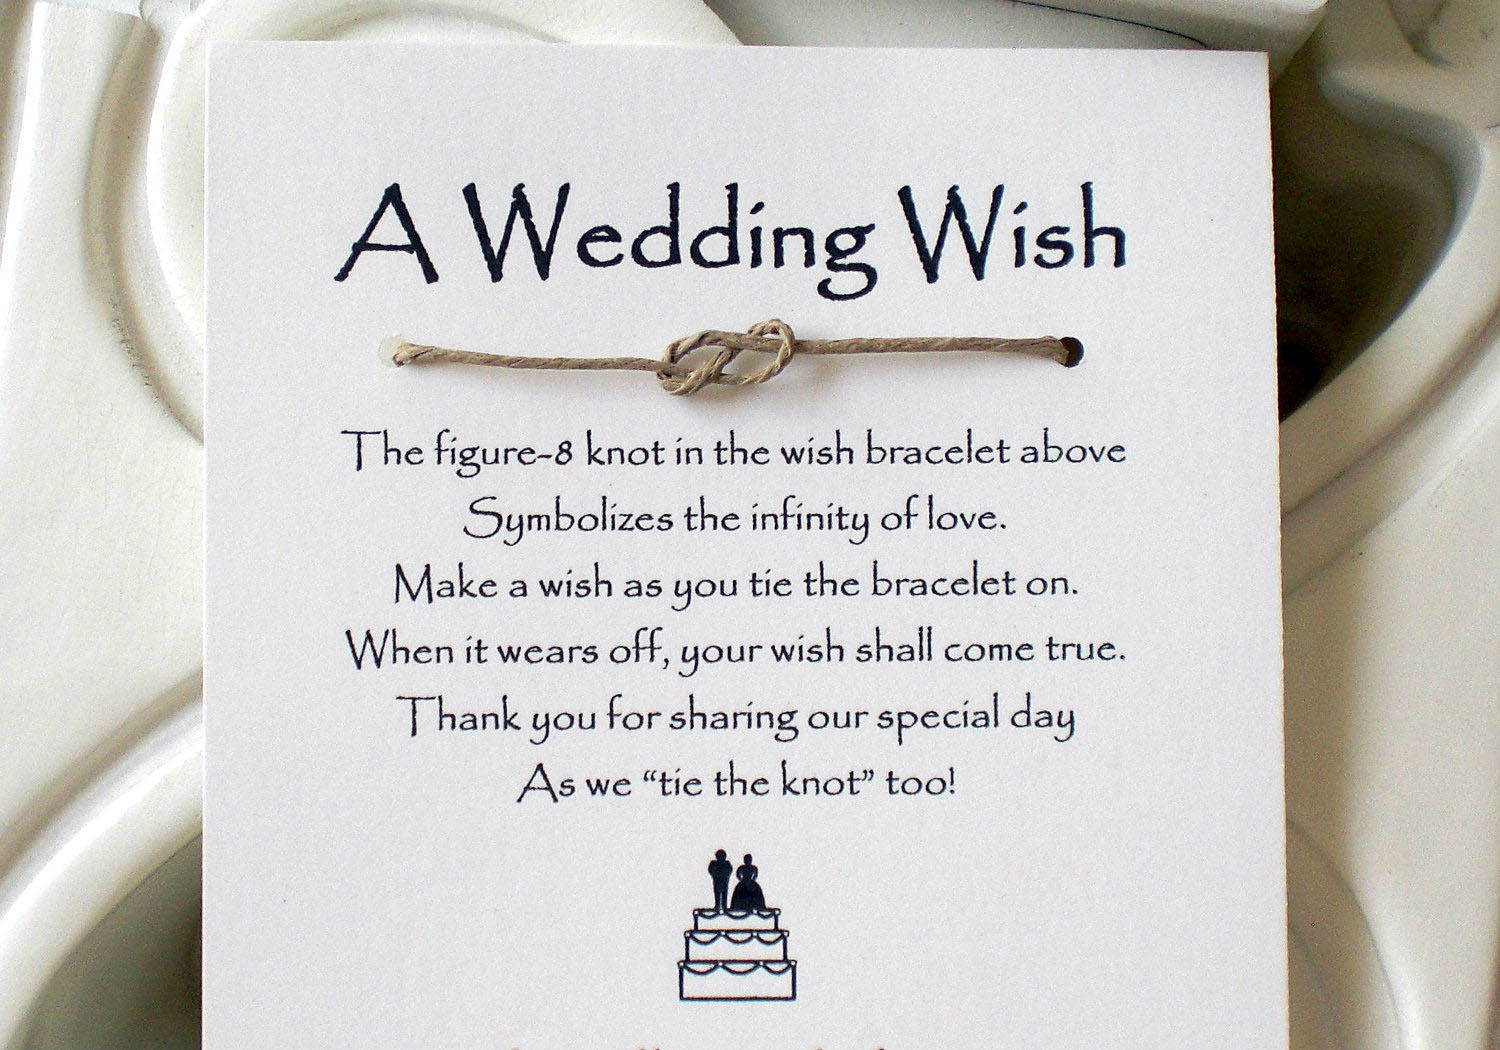 Quotes On Love And Marriage Love Marriage Quotes For Wedding Cards  Good Morning Wishesgood